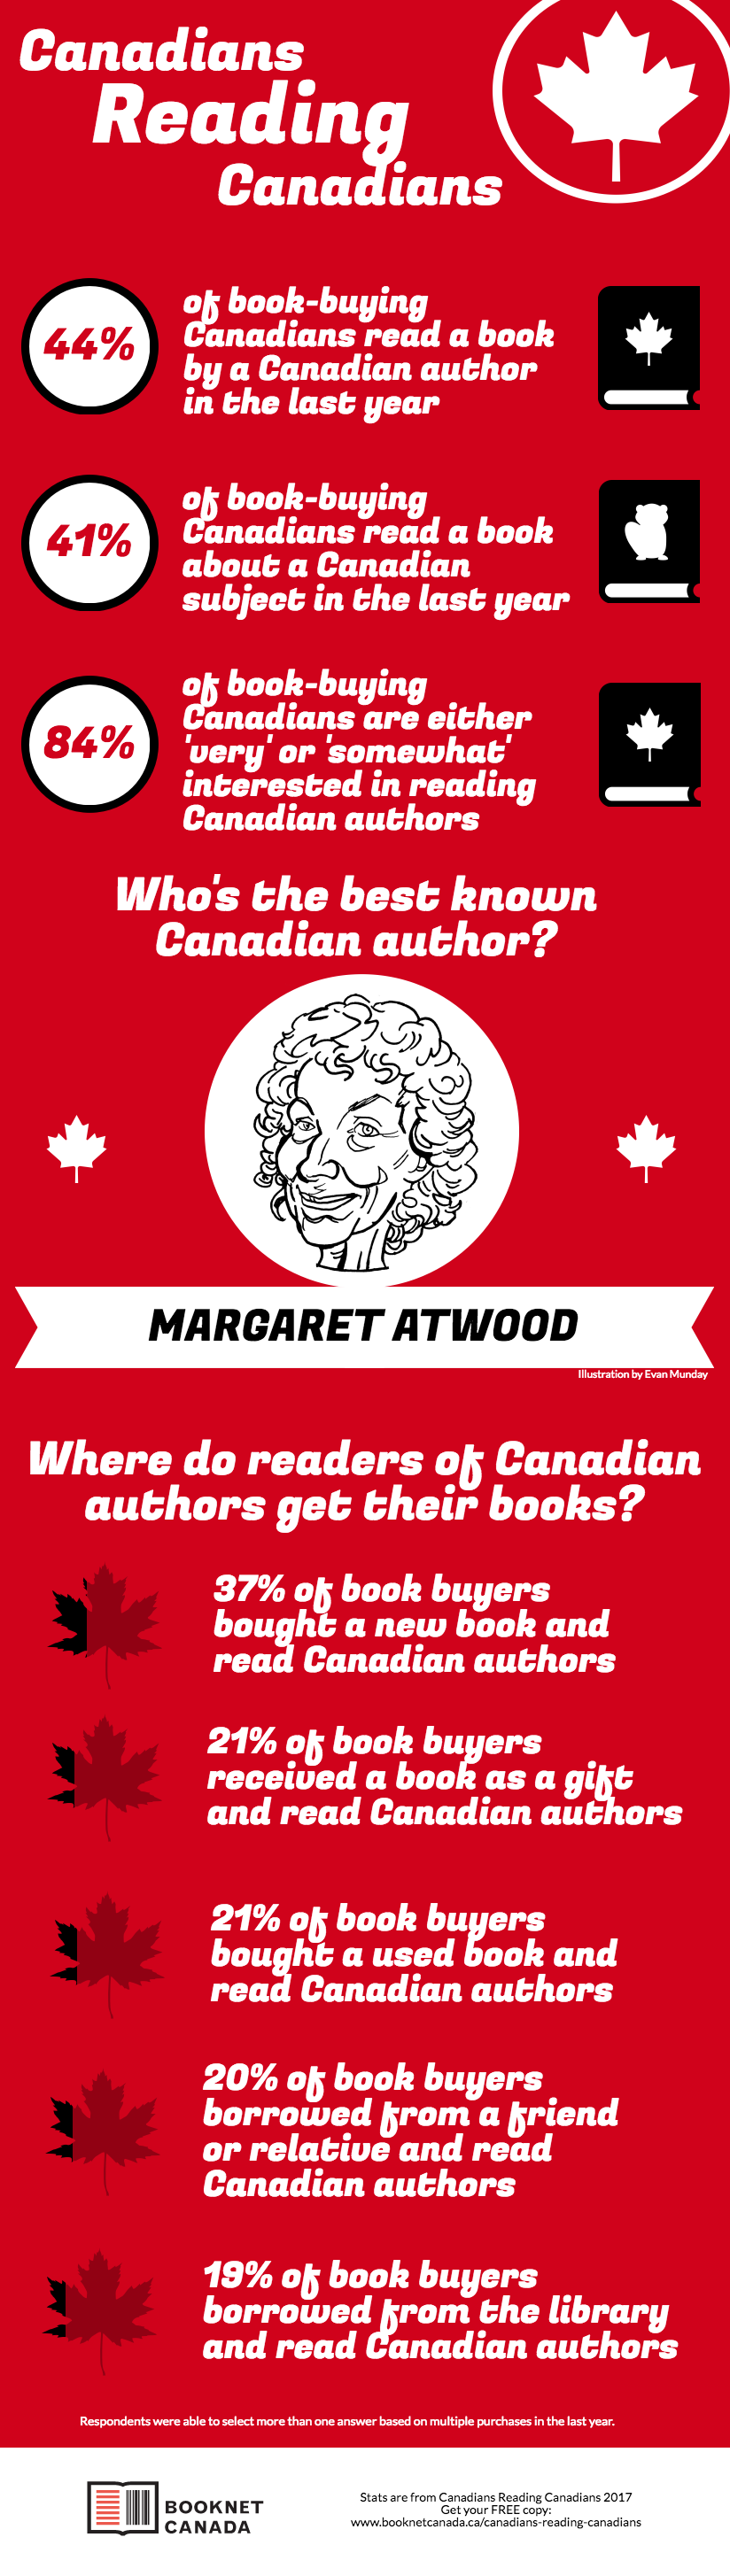 Canadians Reading Canadians infographic